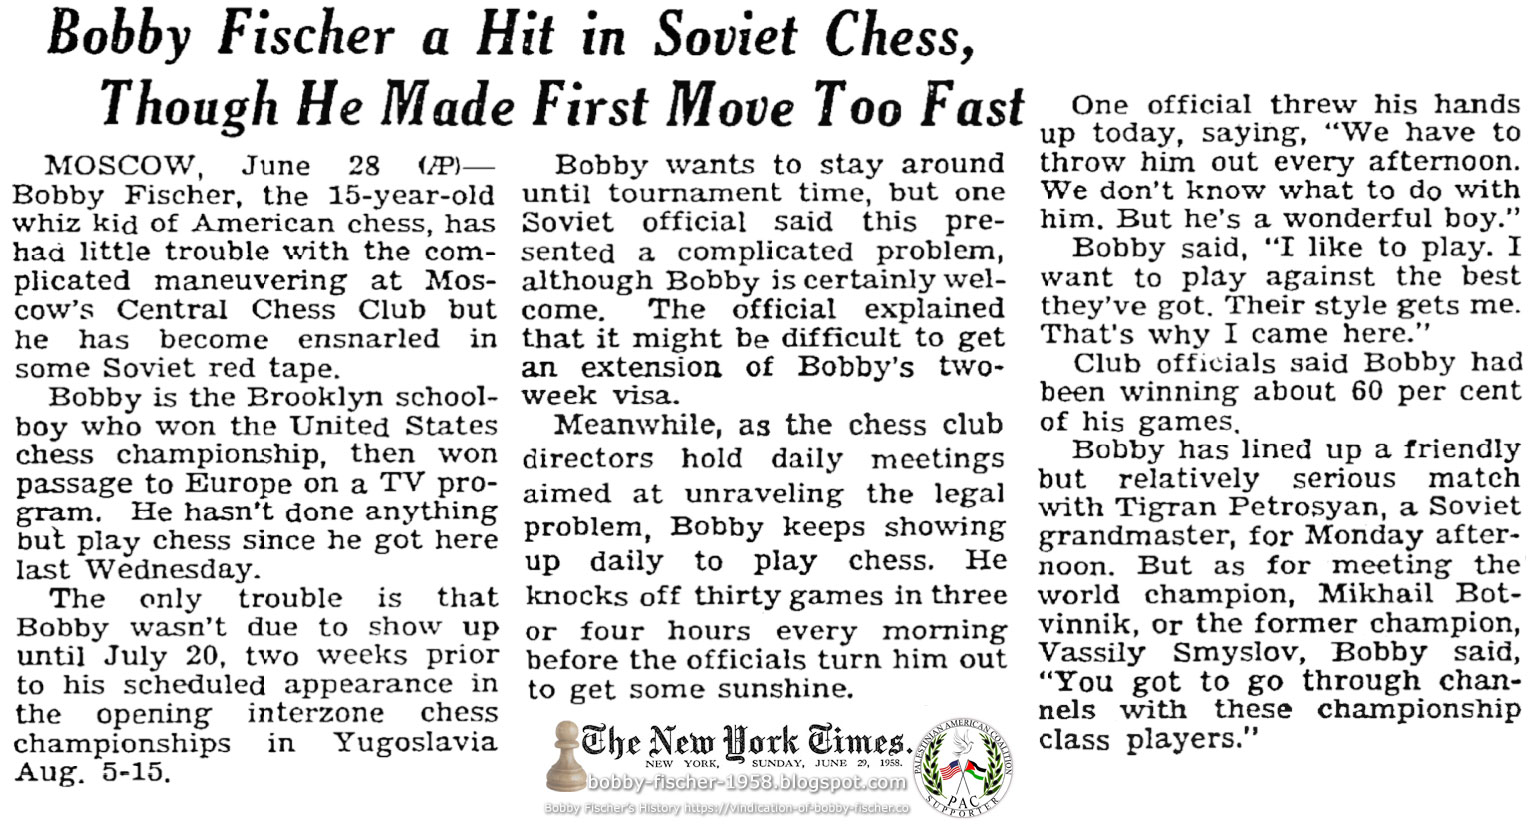 Bobby Fischer a Hit in Soviet Chess, Though He Made First Move Too Fast